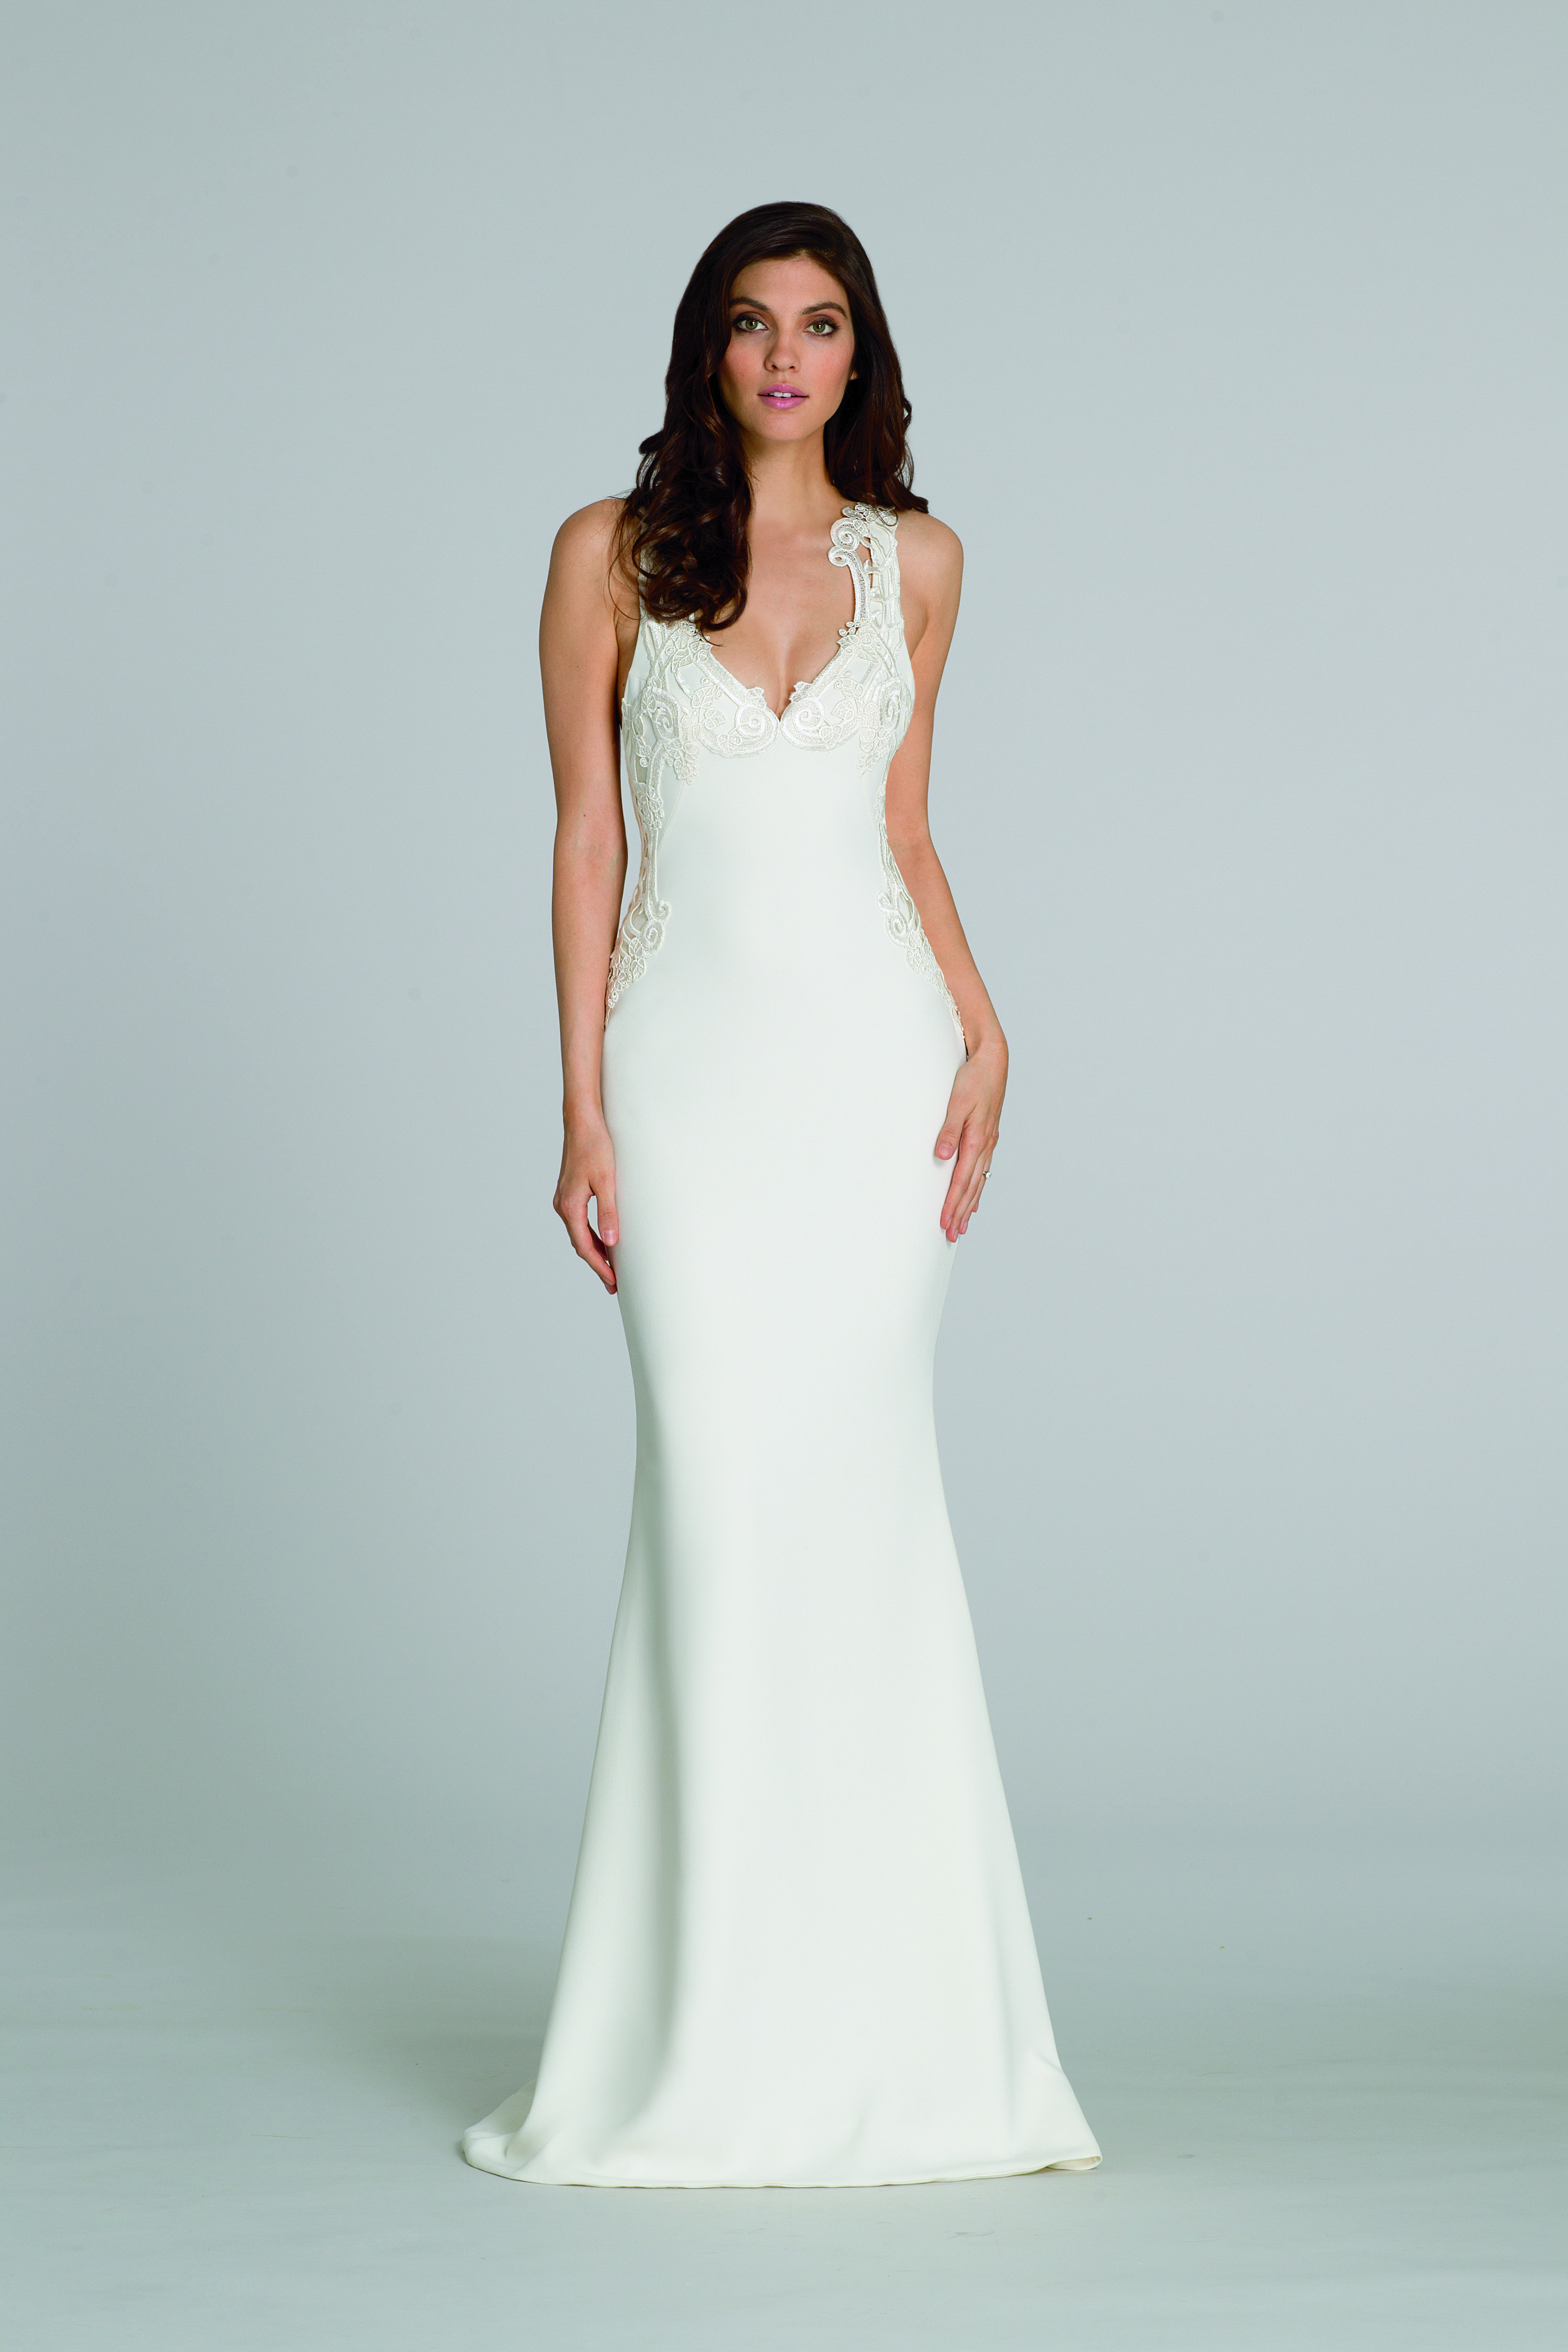 Bridal Gowns and Wedding Dresses by JLM Couture - Style 2550